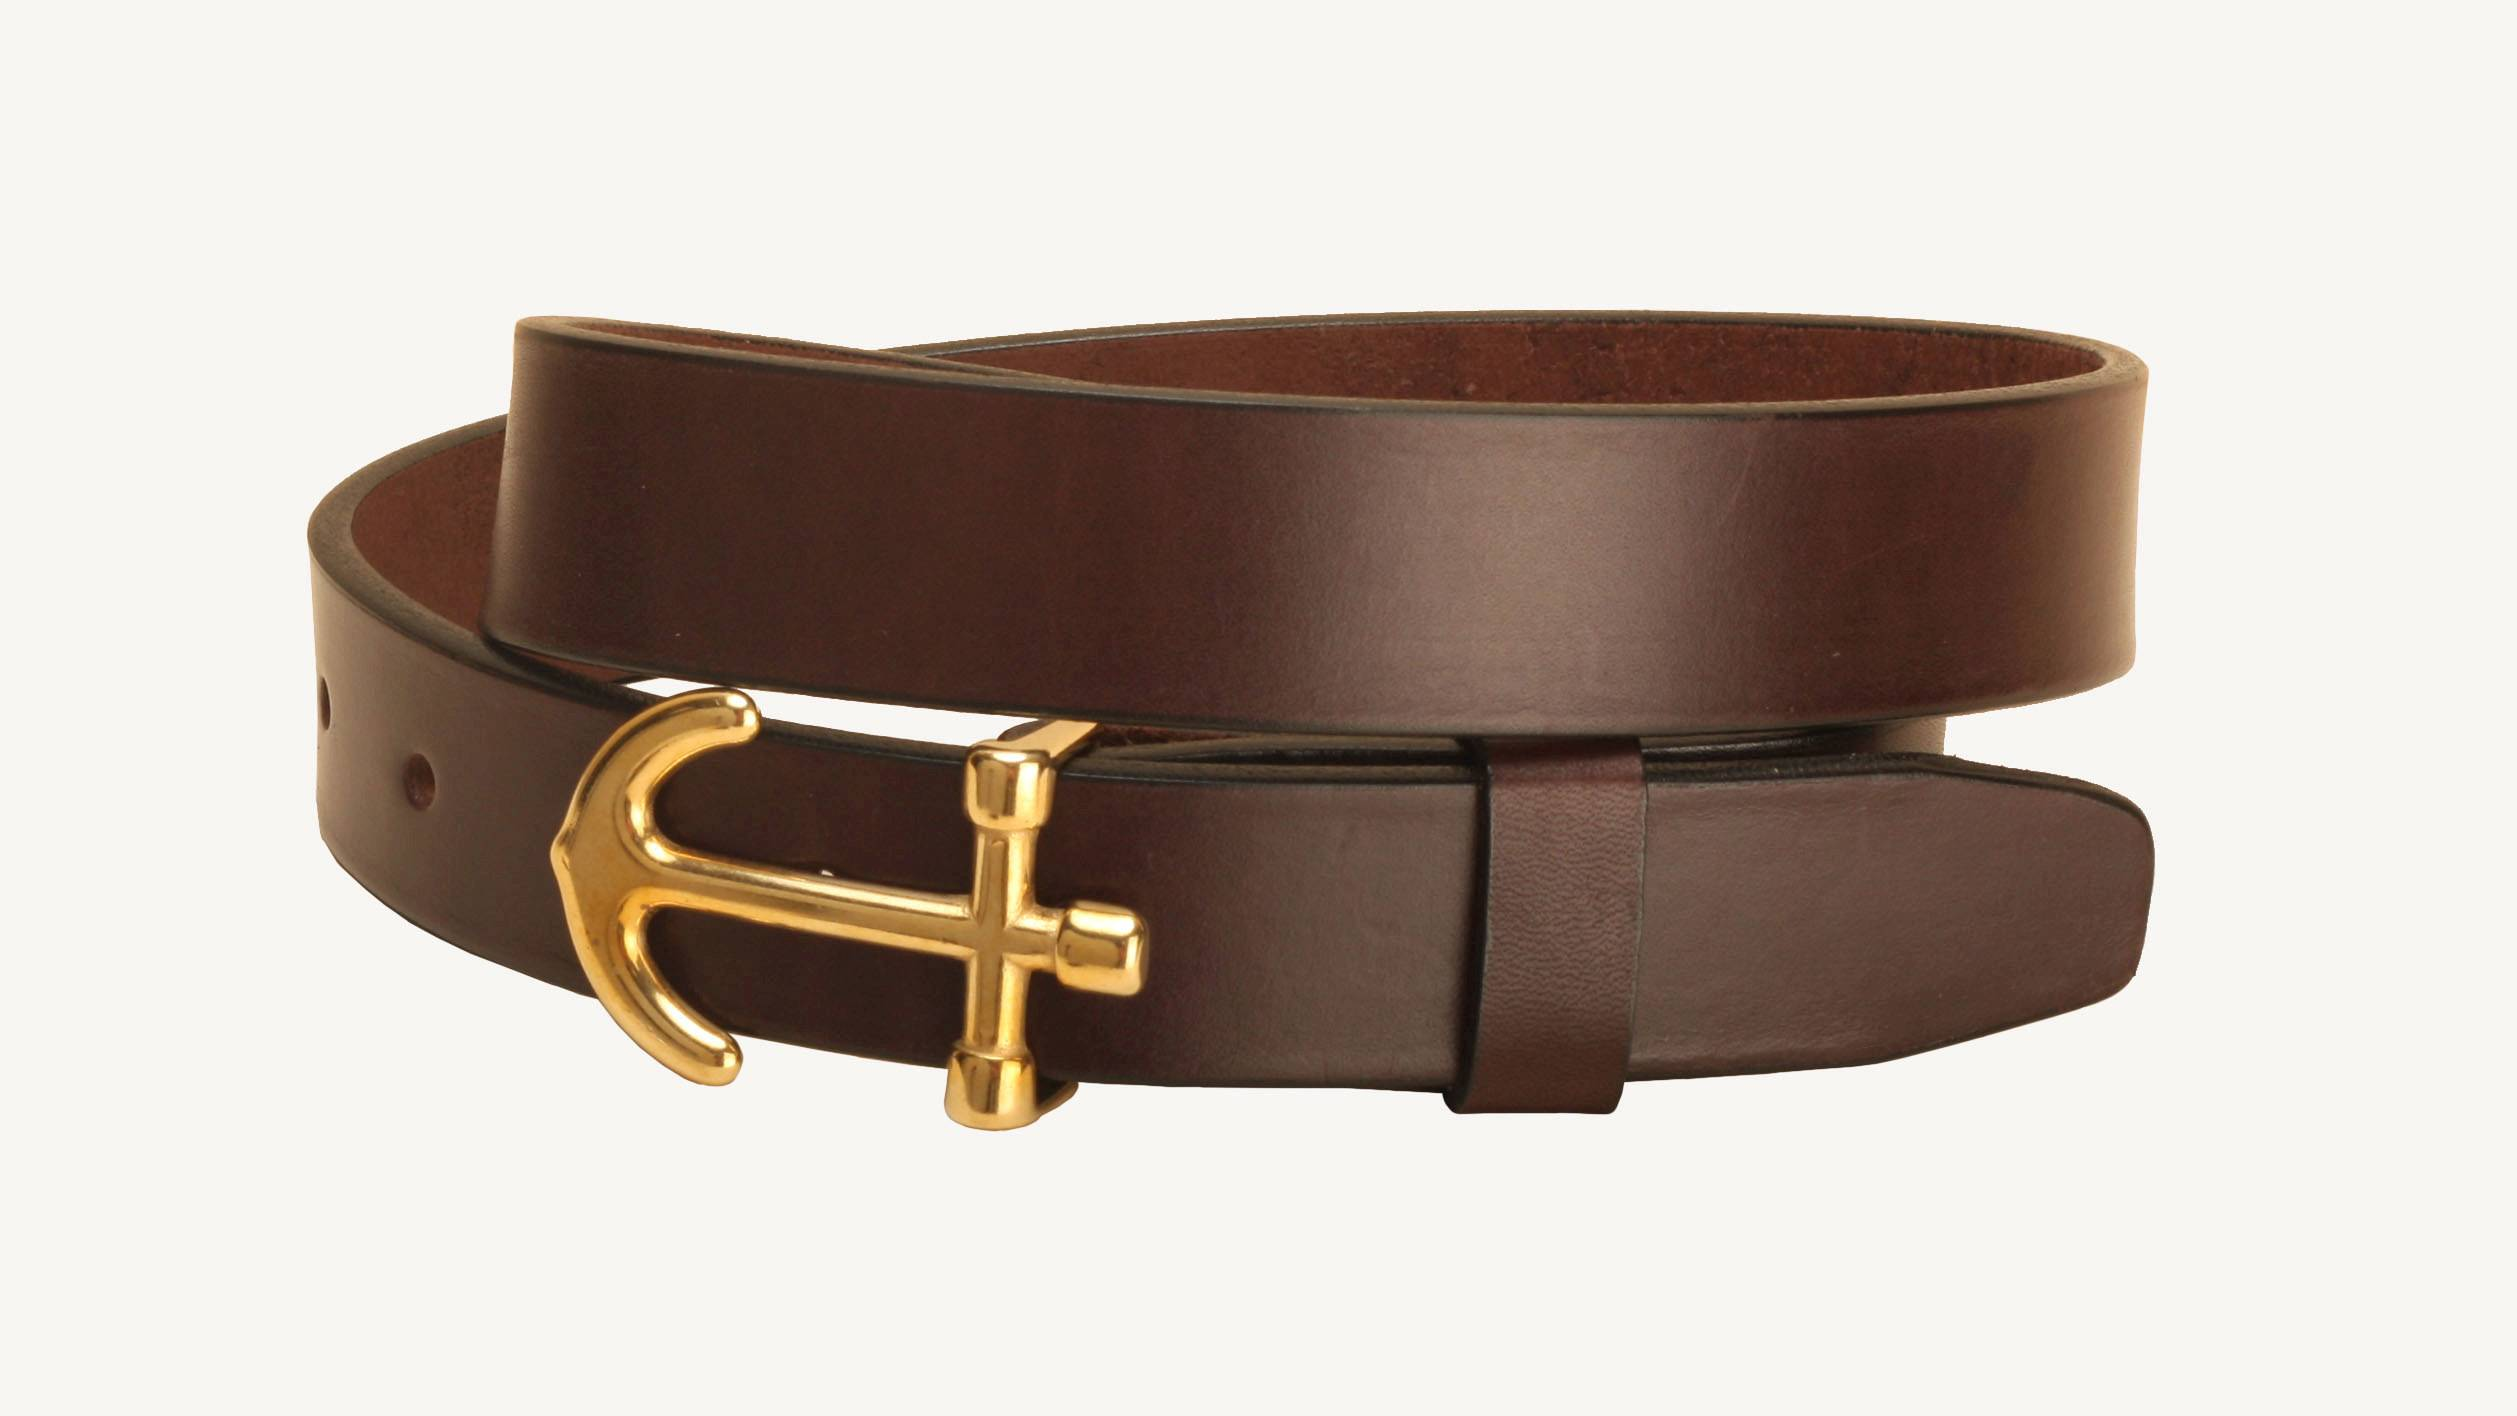 Tory Leather Anchor Buckle Strap Leather Belt